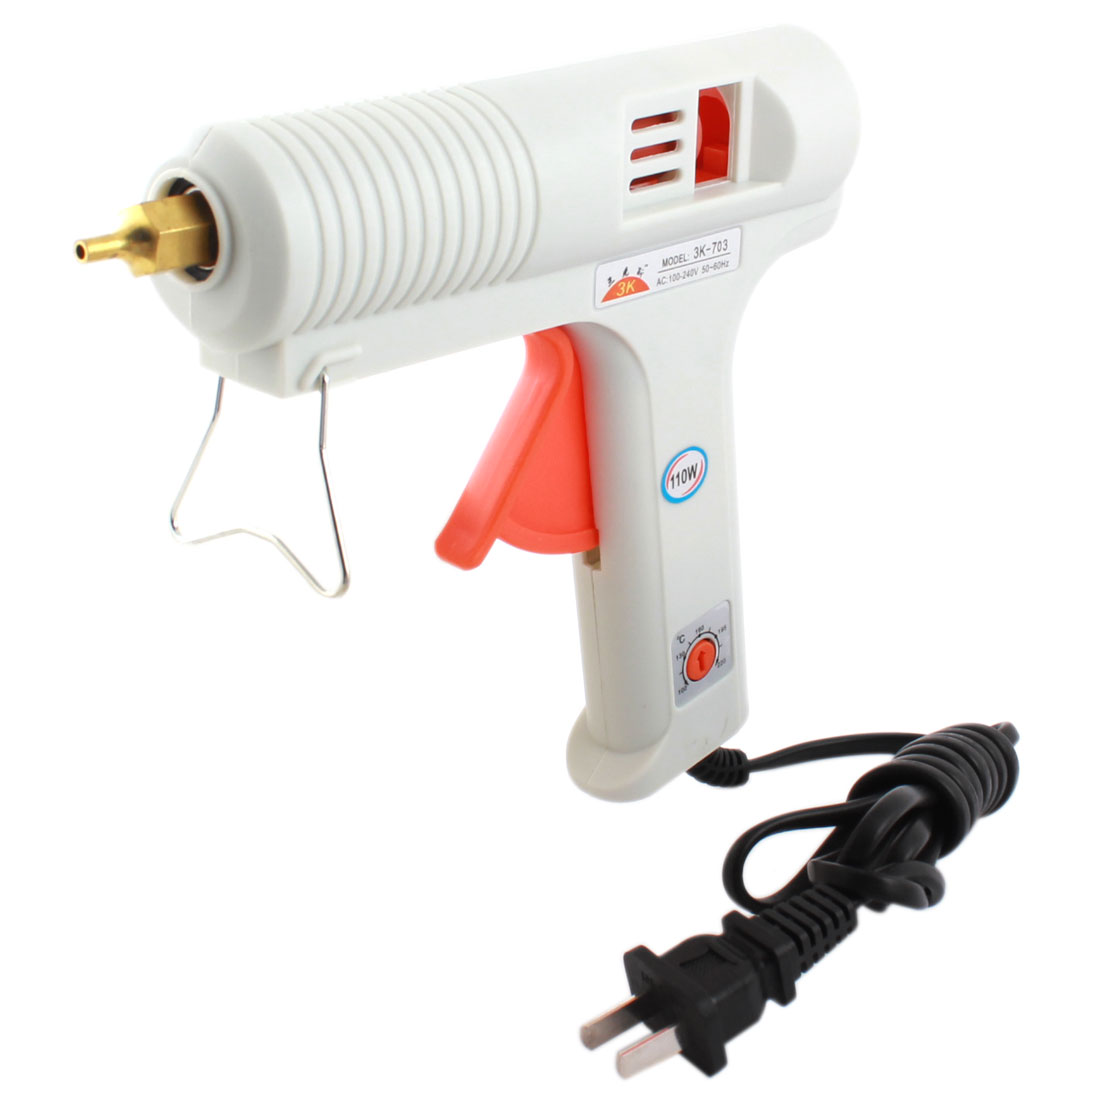 AC 100-240V US Plug 100C-200C Adjustable Hot Melt Glue Gun 110W 3K-701